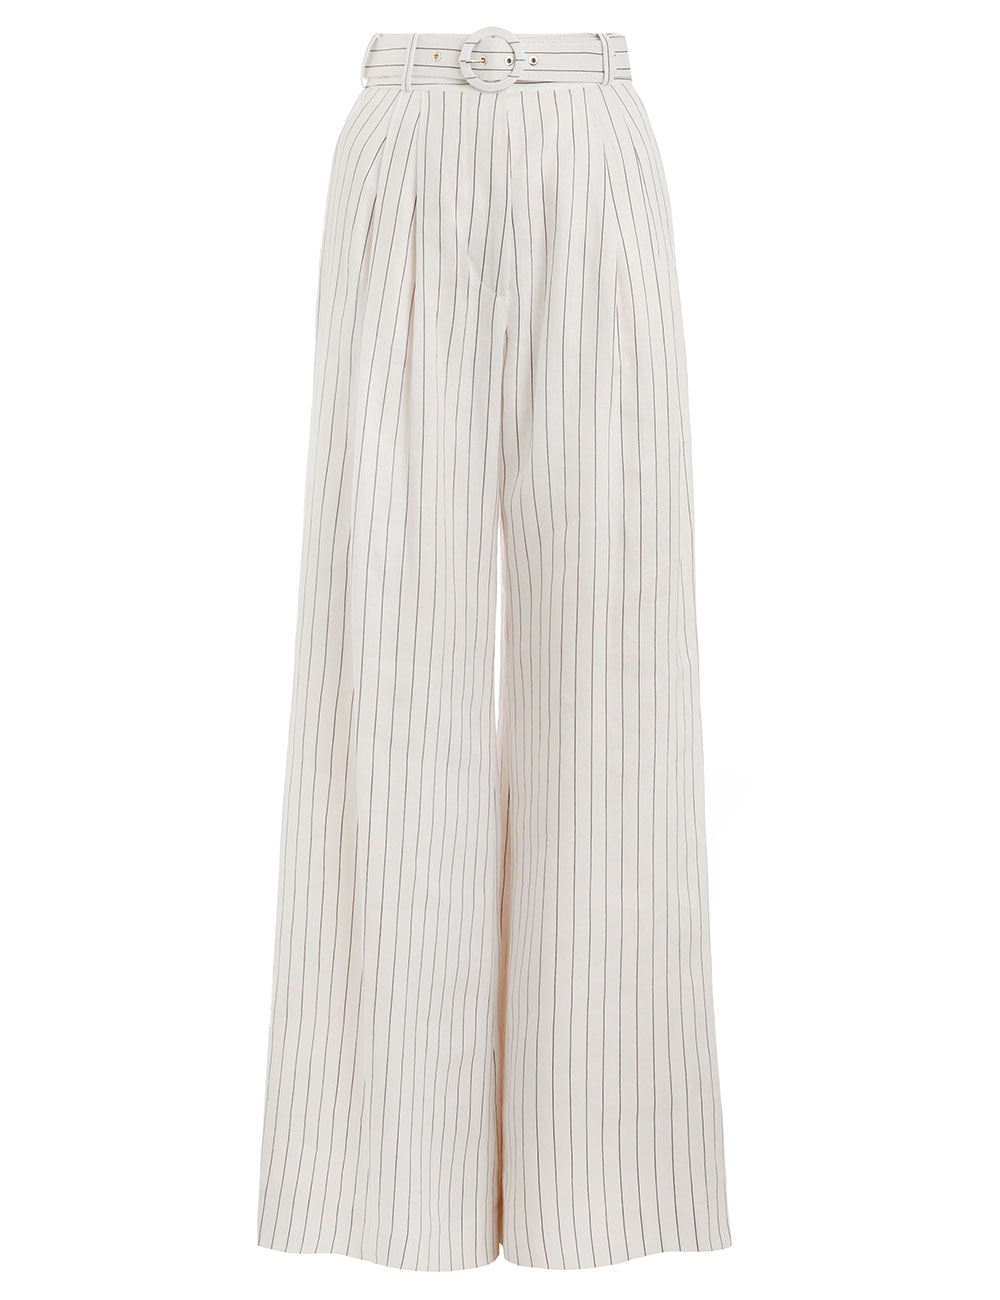 Corsage Tailored Pant